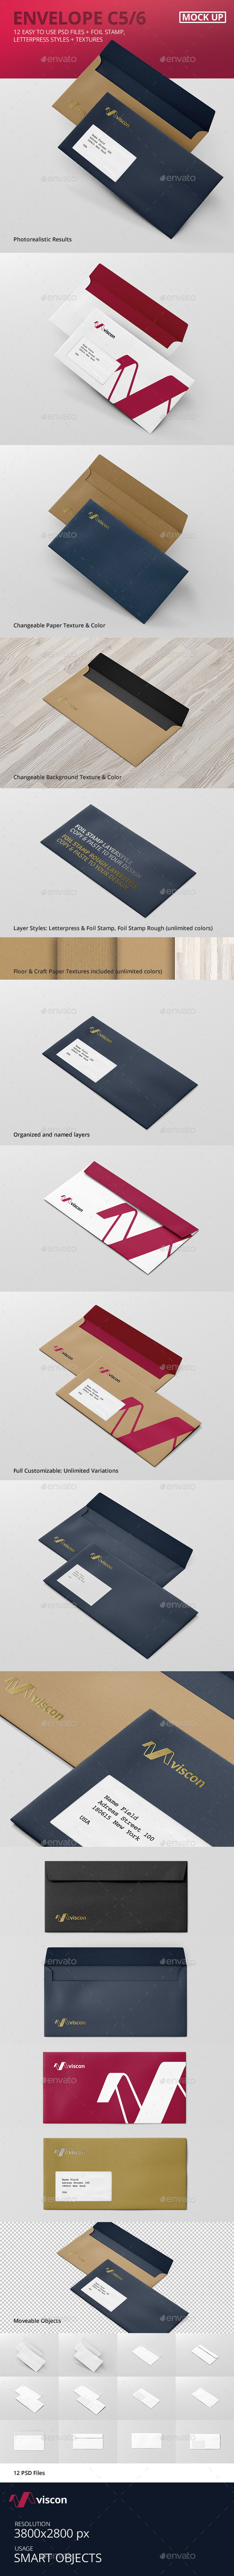 GraphicRiver Envelope C5 6 Mock-Up 10527135